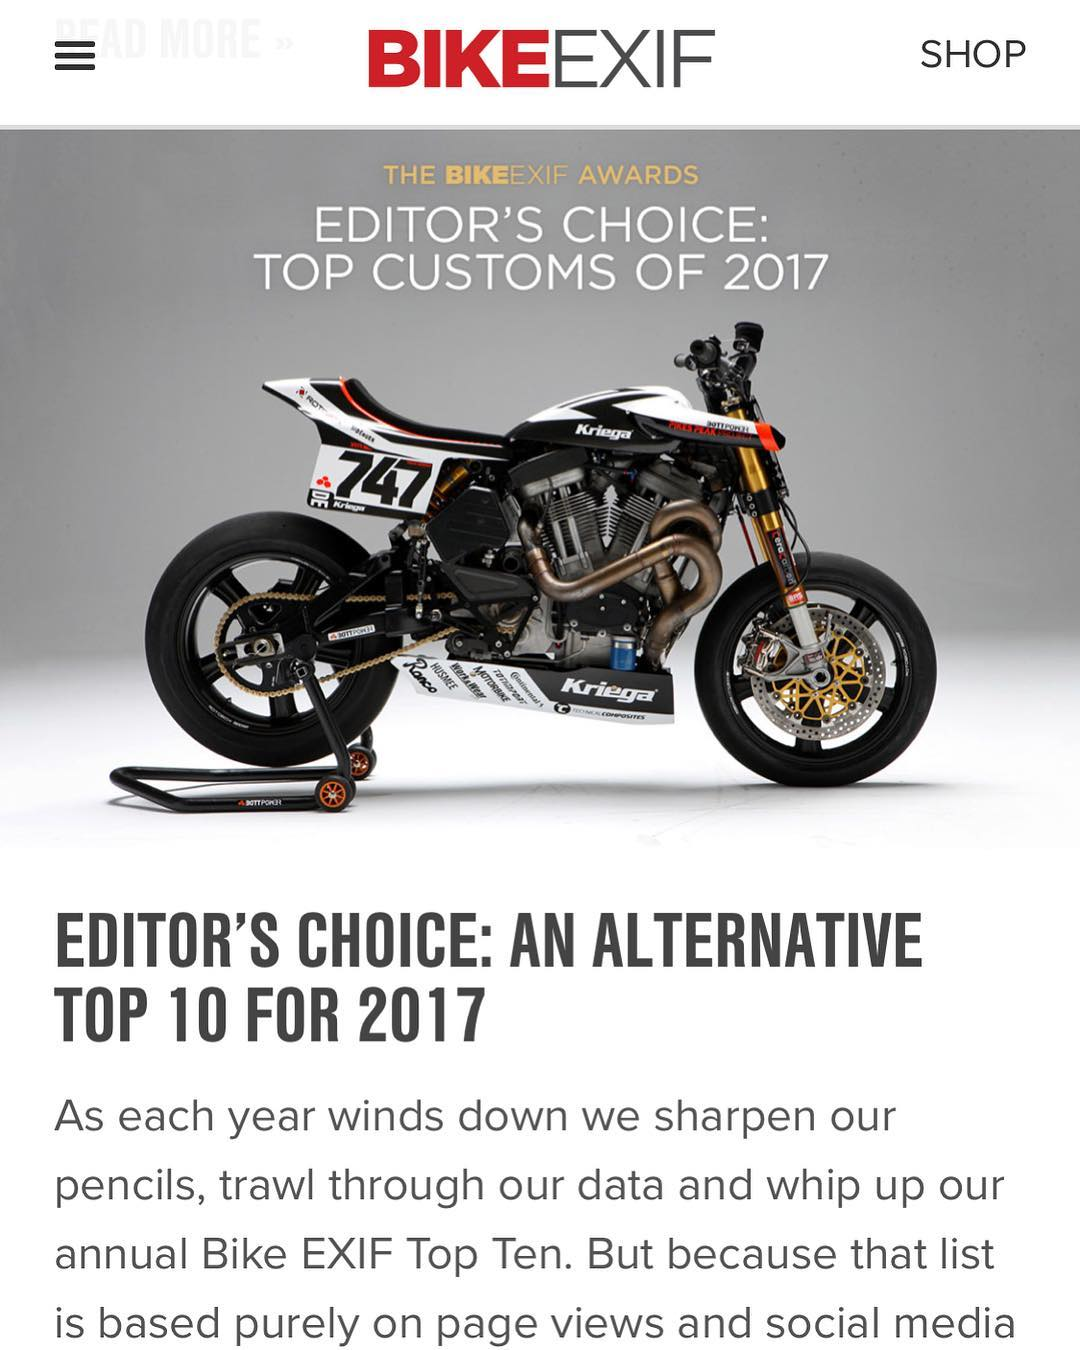 Chuffed to see the one and only motorcycle graphic I worked on last year making it to the top of the editors list on @bikeexif ! Thanks @bottpower for the chance to work on such a special bike! #design #xr1r #buell